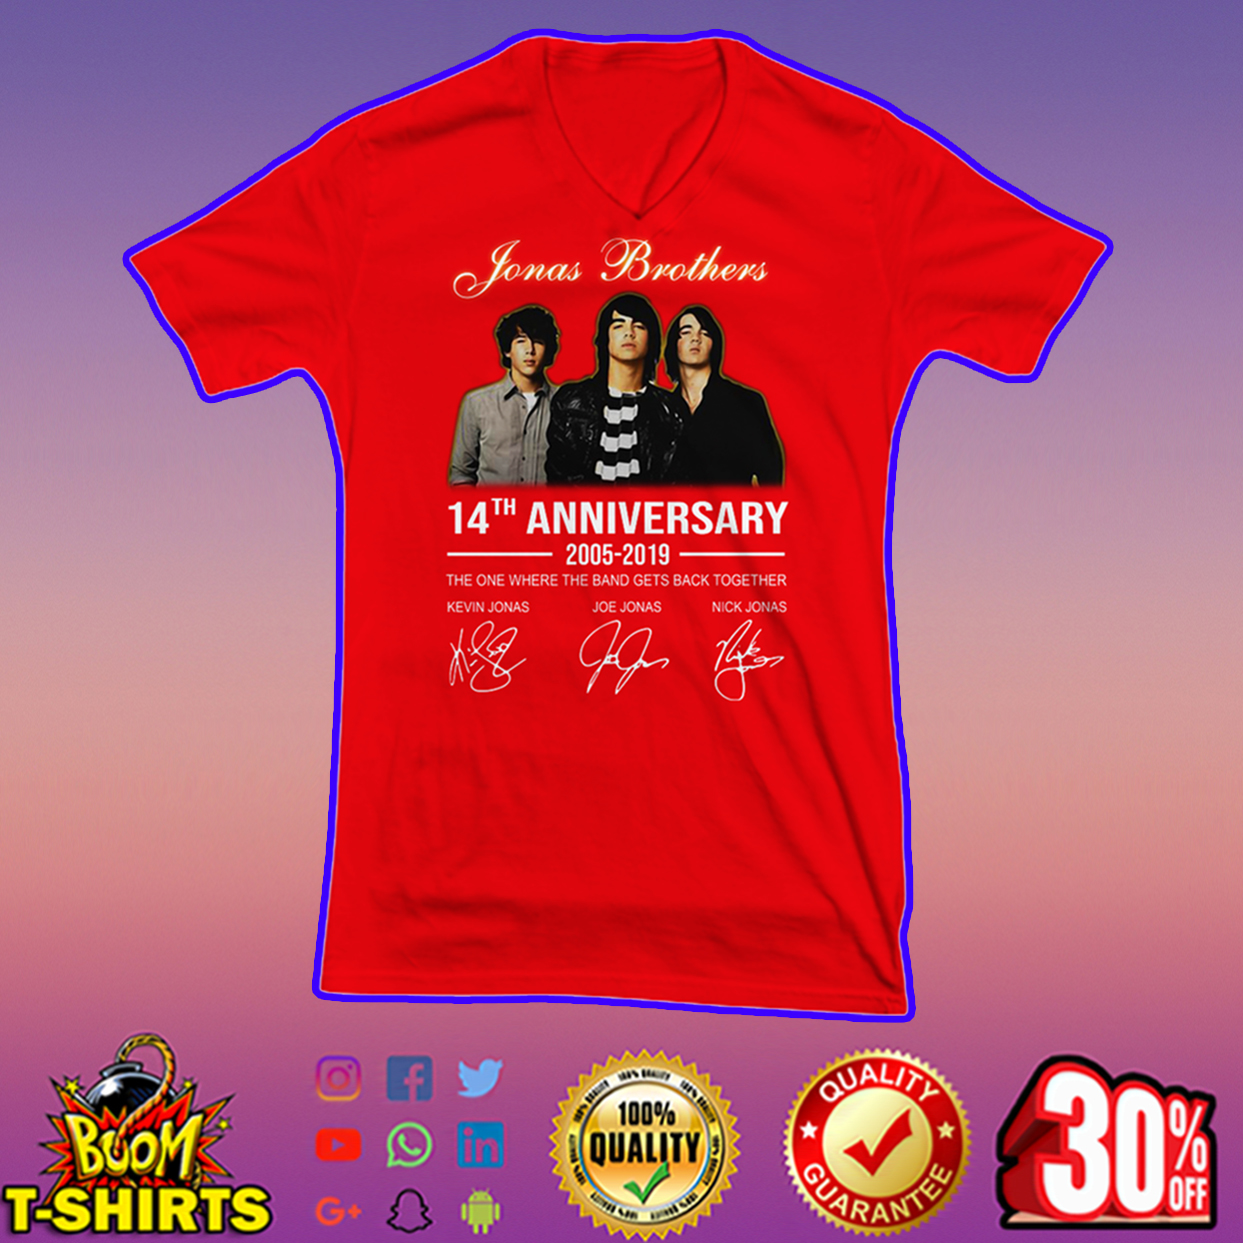 Jonas Brothers 14th anniversary 2005-2019 signature v-neck